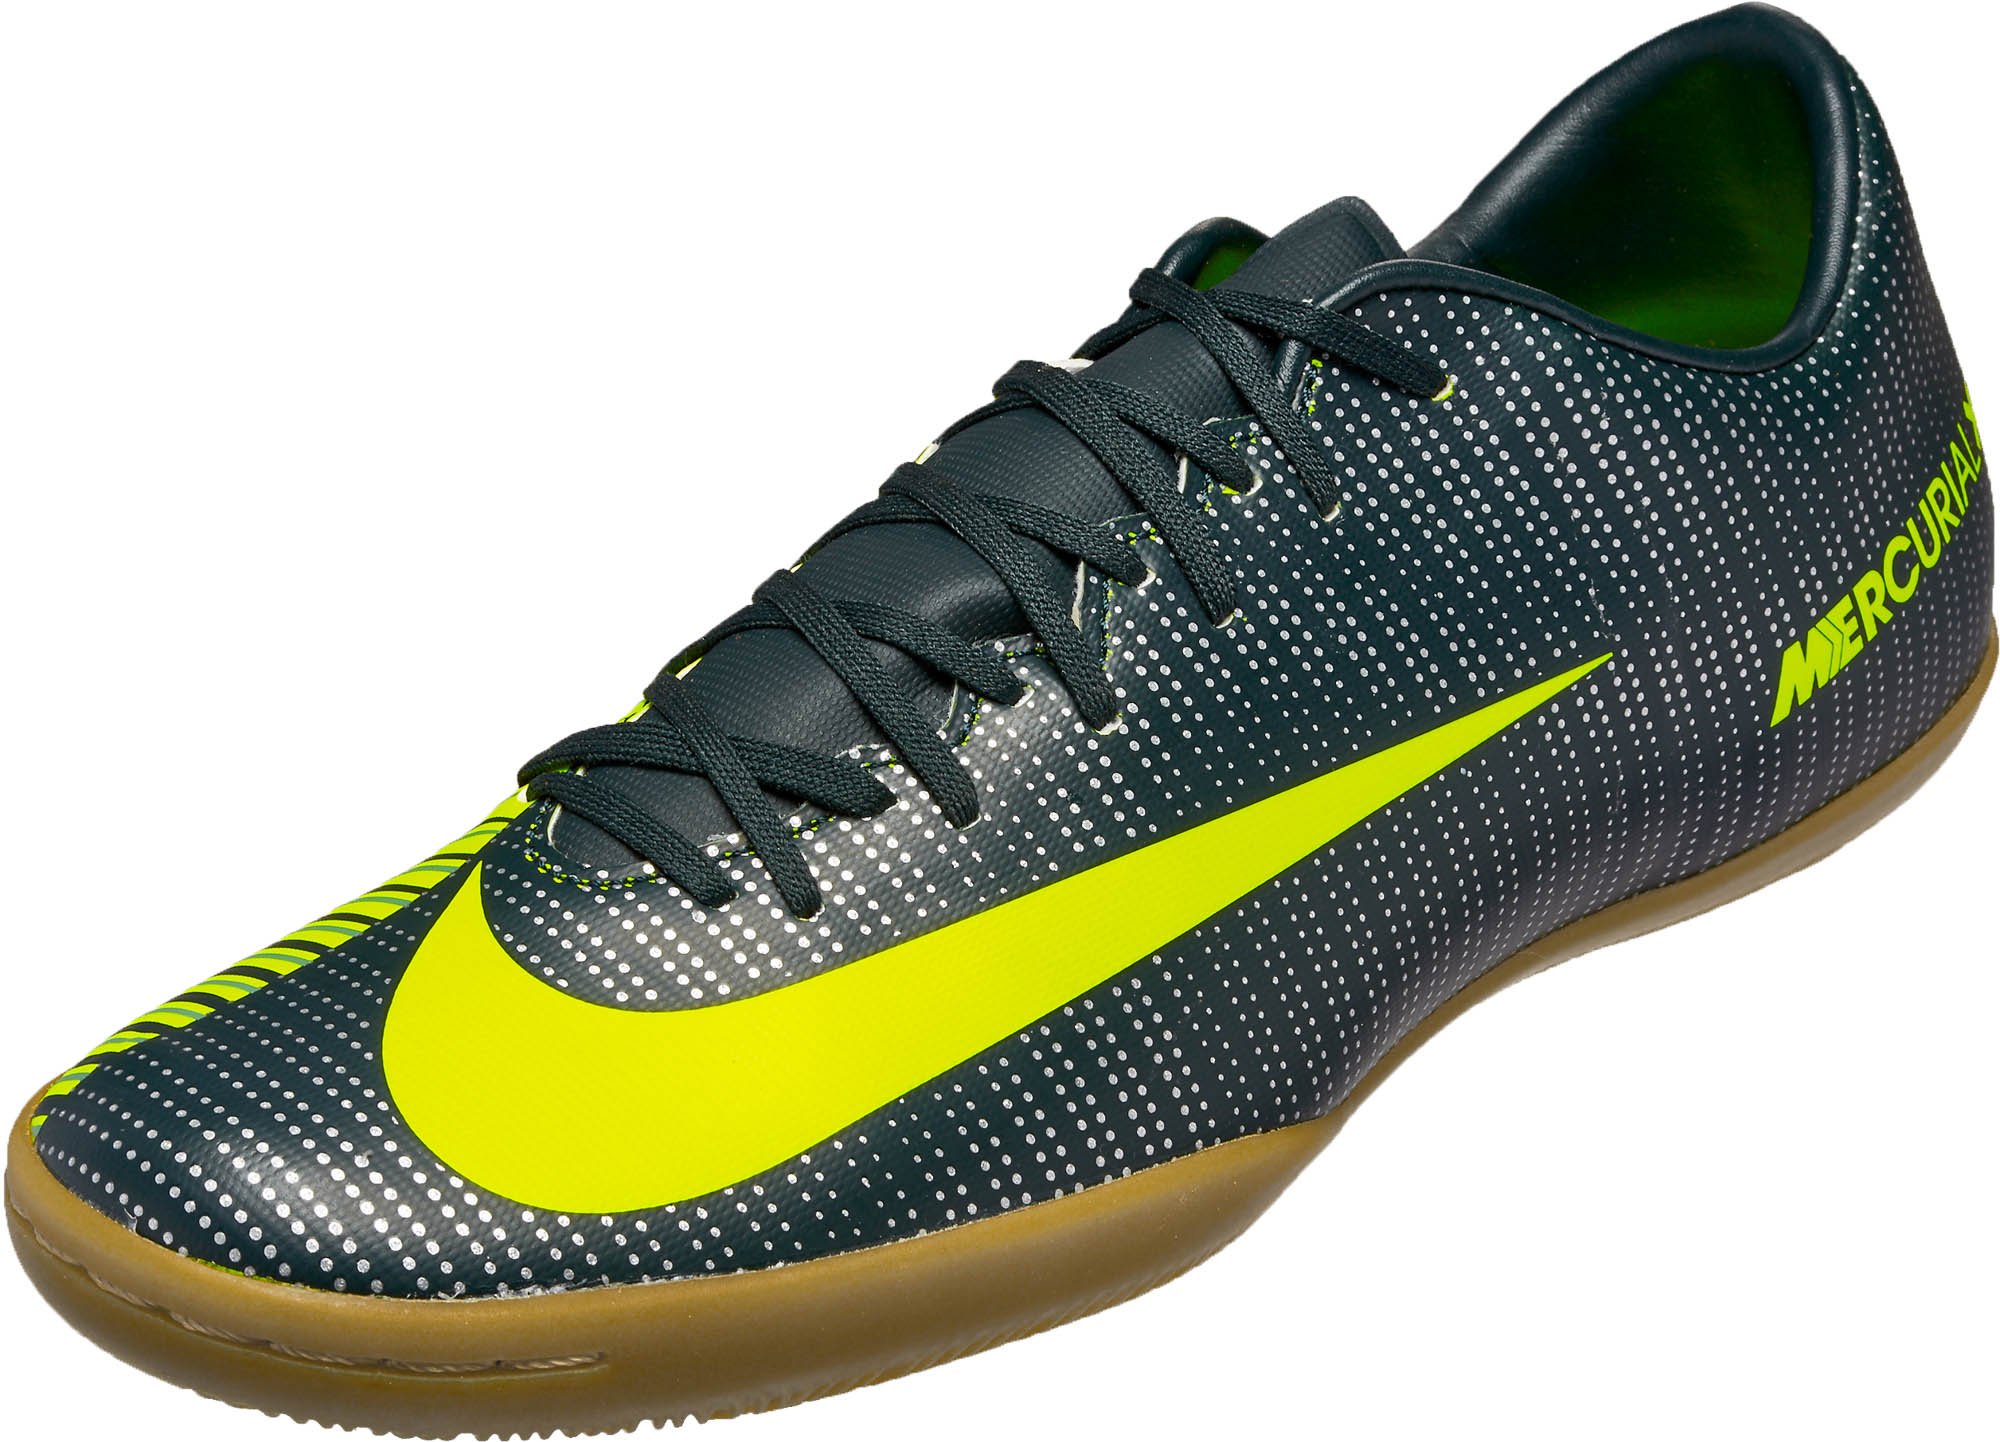 Nike Mercurial Superfly Victory 6 Green - Musée des impressionnismes ... f5c939620a706